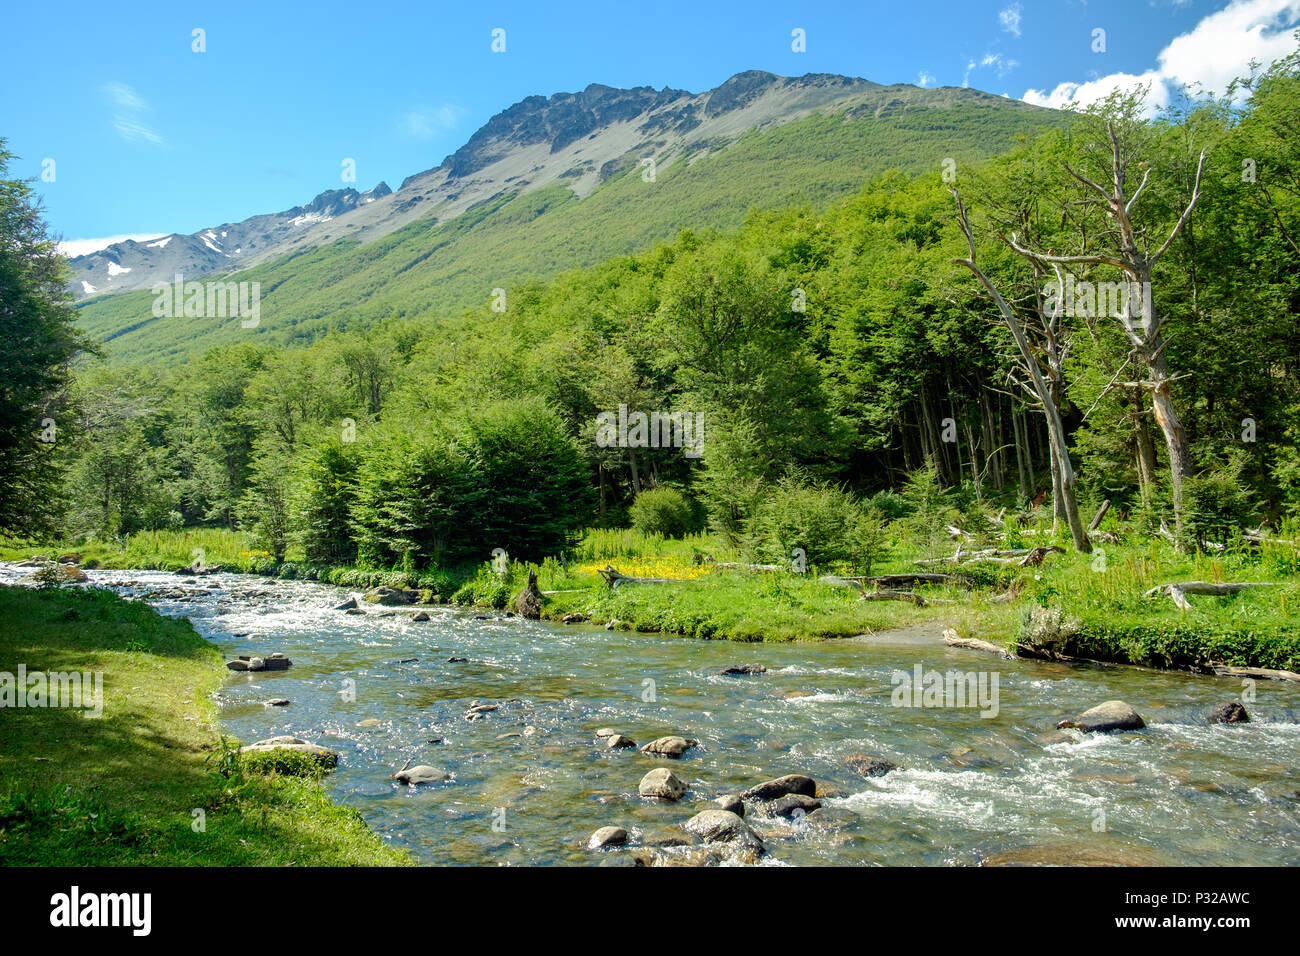 Río Chico streams through the Andorra Valley of Ushuaia in Tierra del Fuego. The river lies in the middle of a supreme nature scenery. Stock Photo